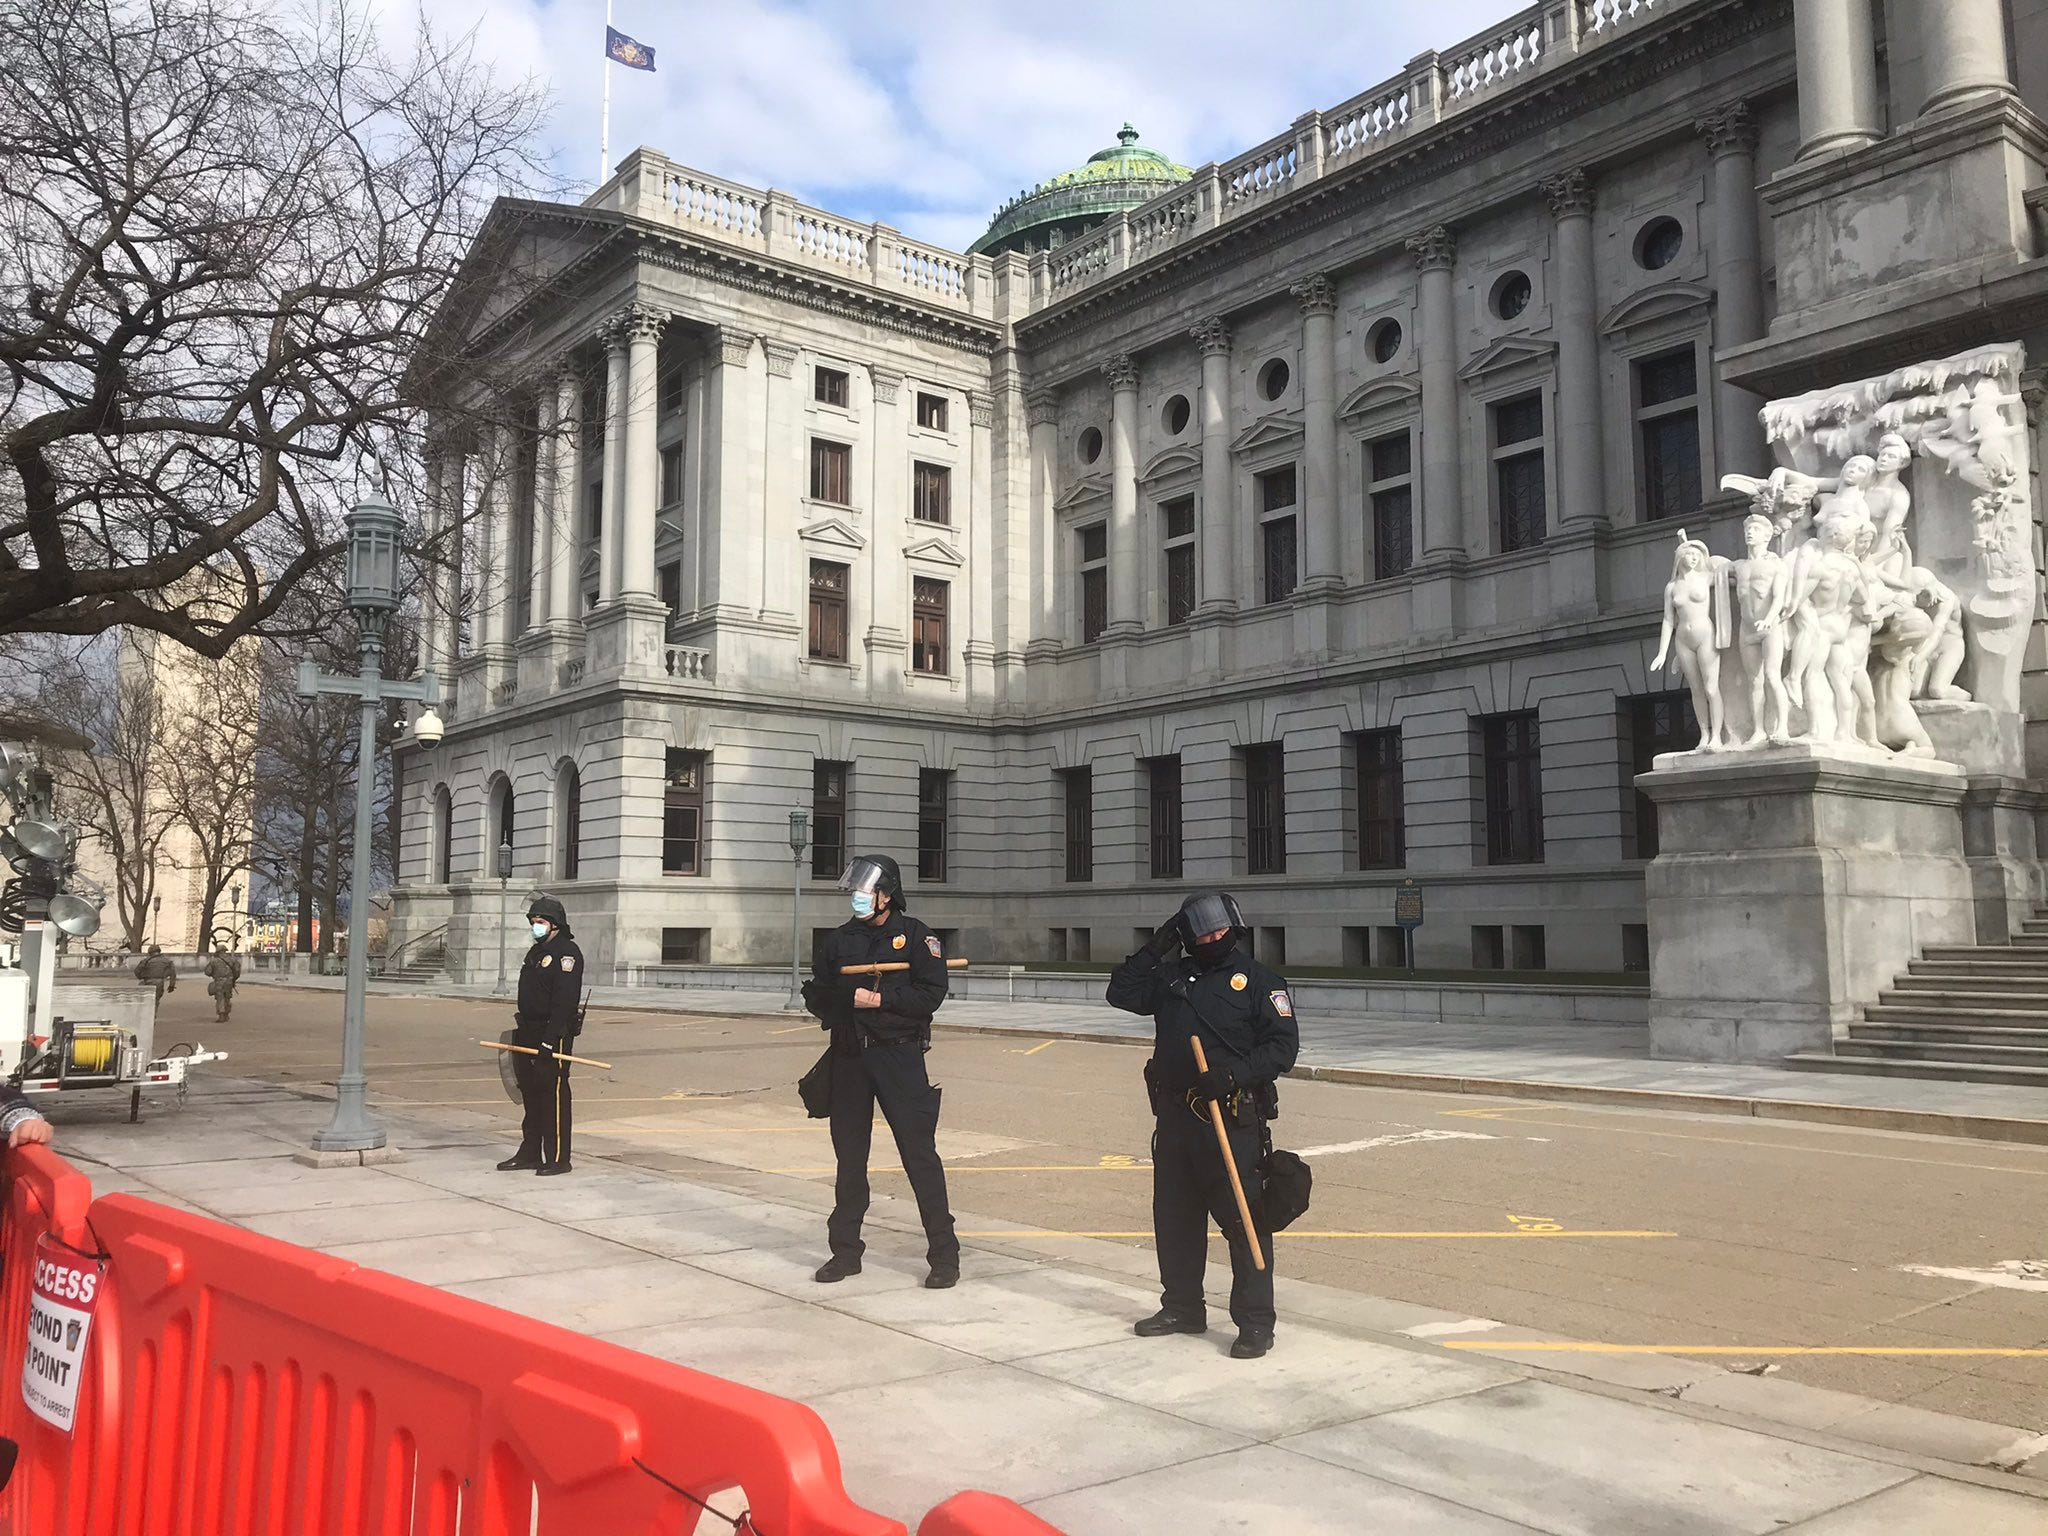 Law enforcement and a few journalists were seen outside the Pennsylvania Capitol in Harrisburg on Sunday, Jan. 17, 2021, ahead of expected pro-Trump rallies.